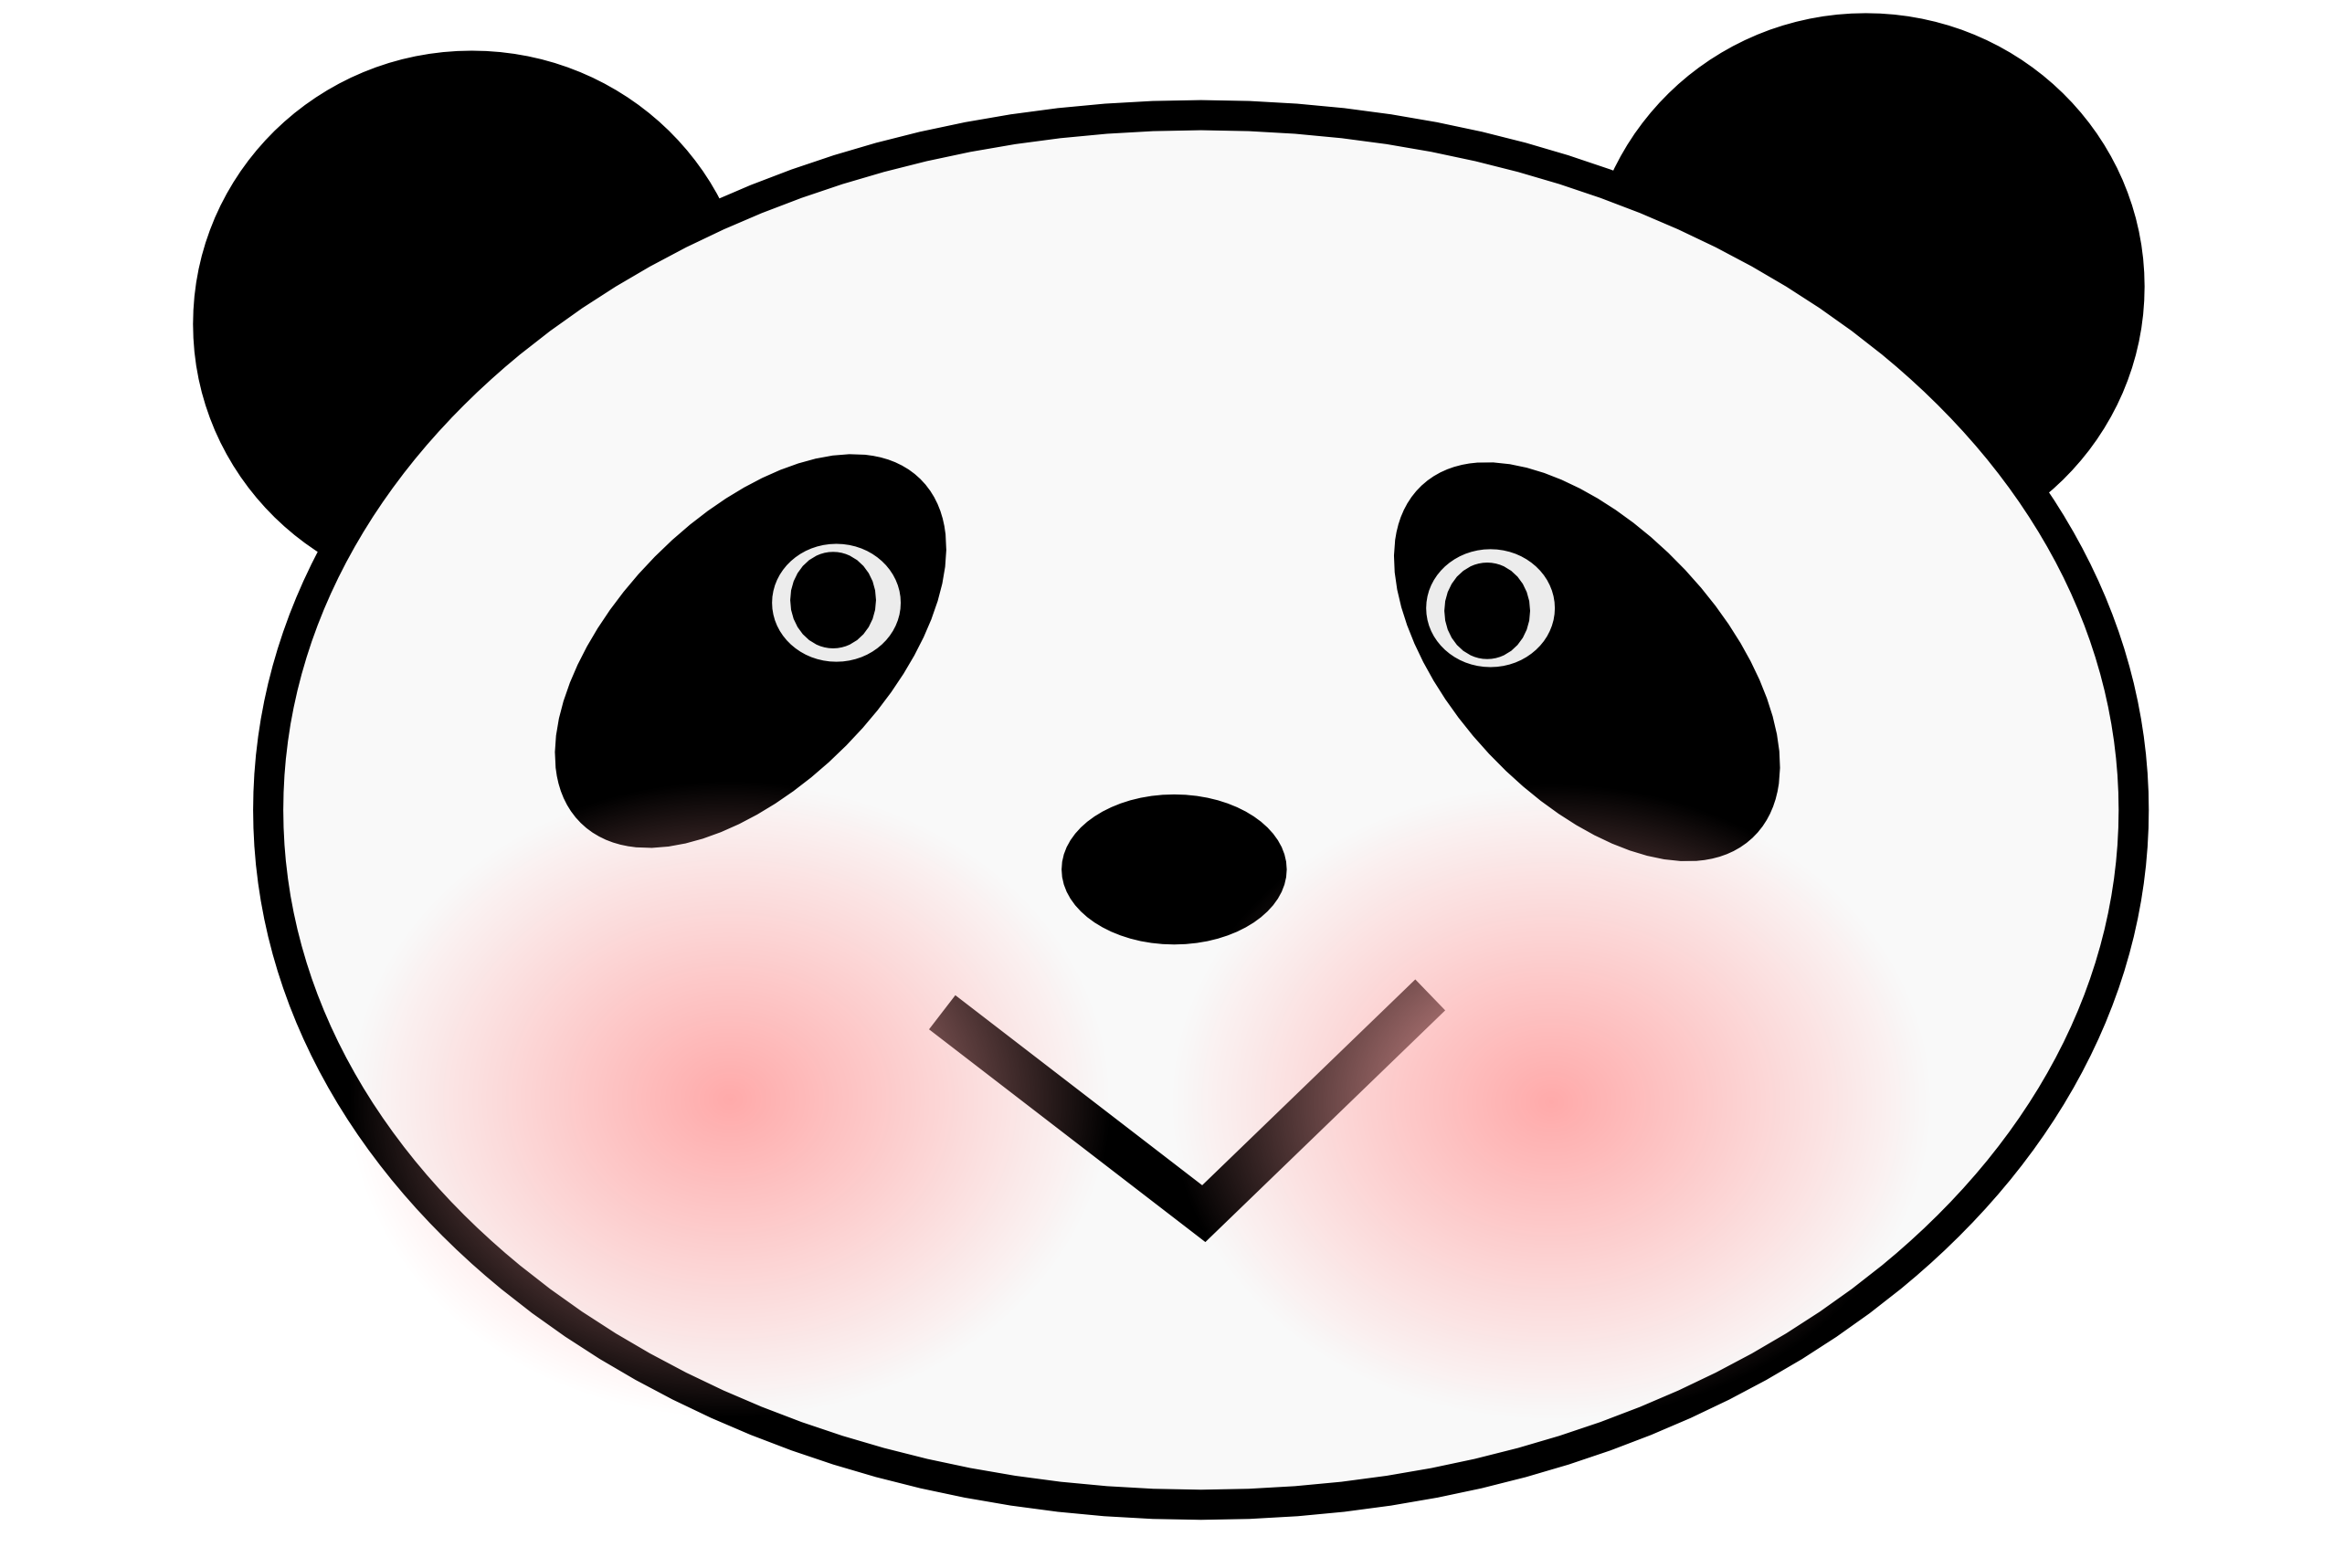 Clipart Panda Free Clipart Images: I Love You Teddy Bear Clipart